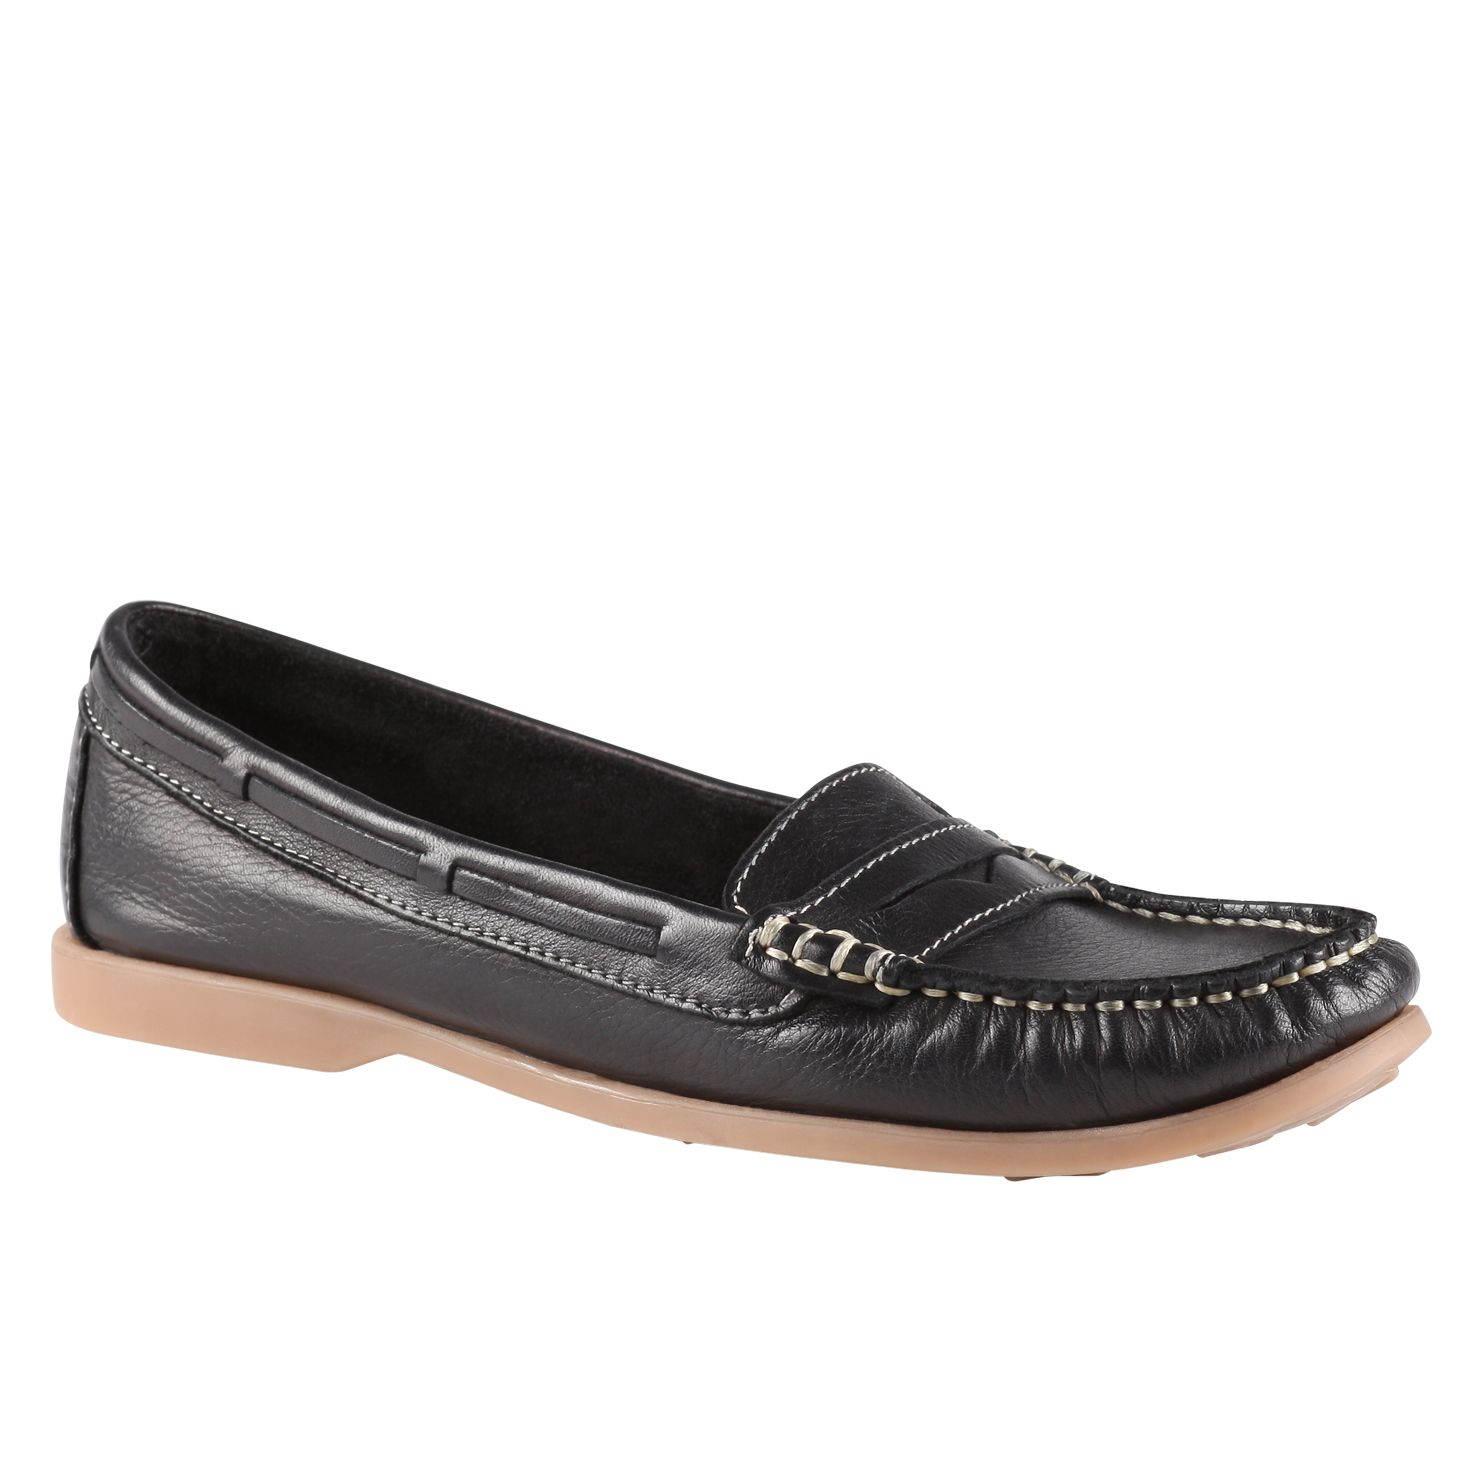 Catrin loafer shoes